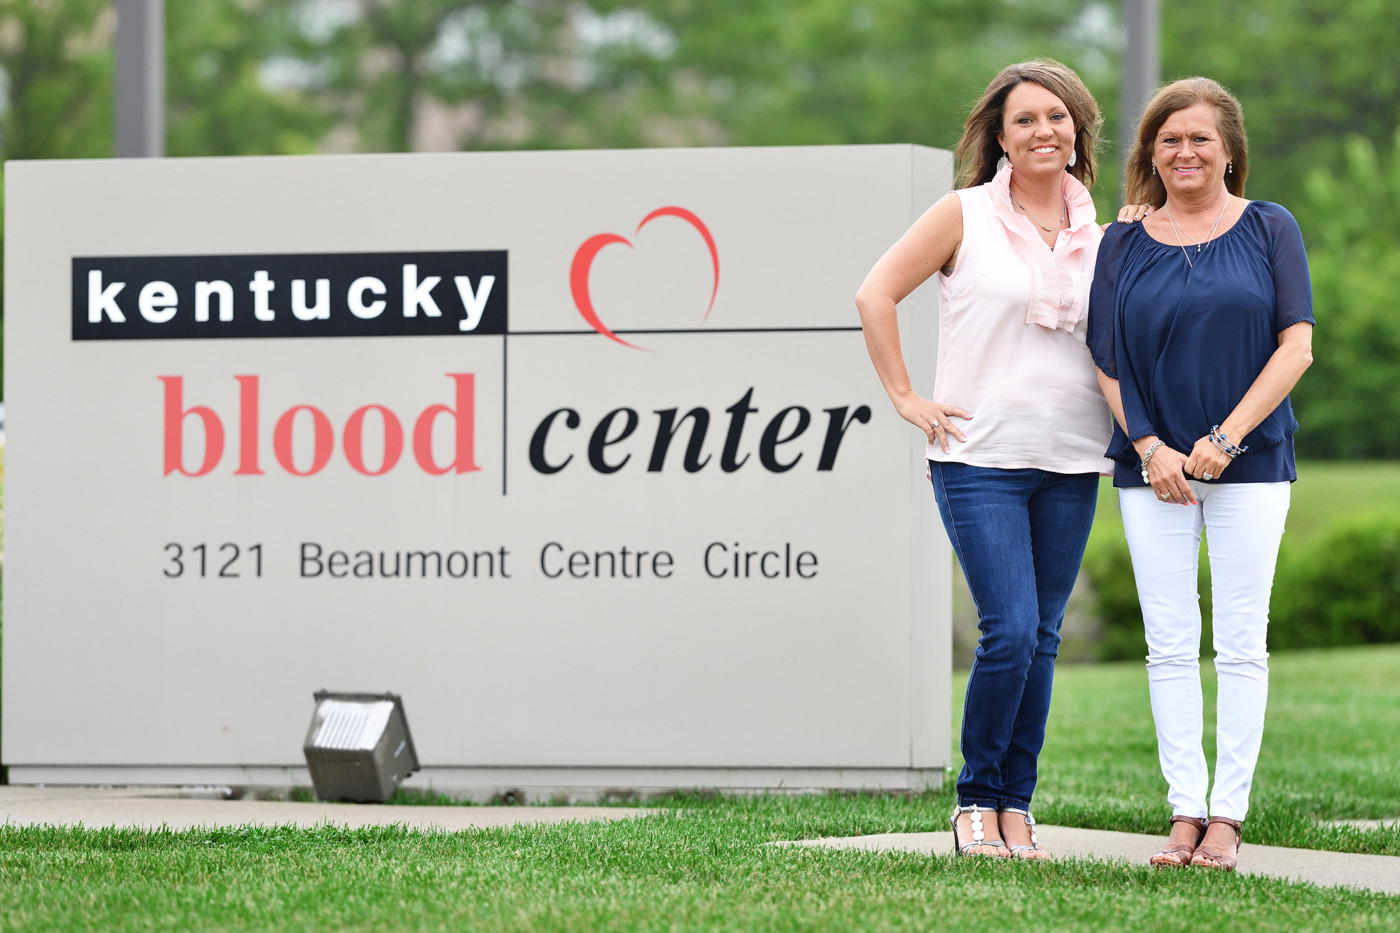 Promoting blood donation is a family affair for Belinda and her mom Connie.